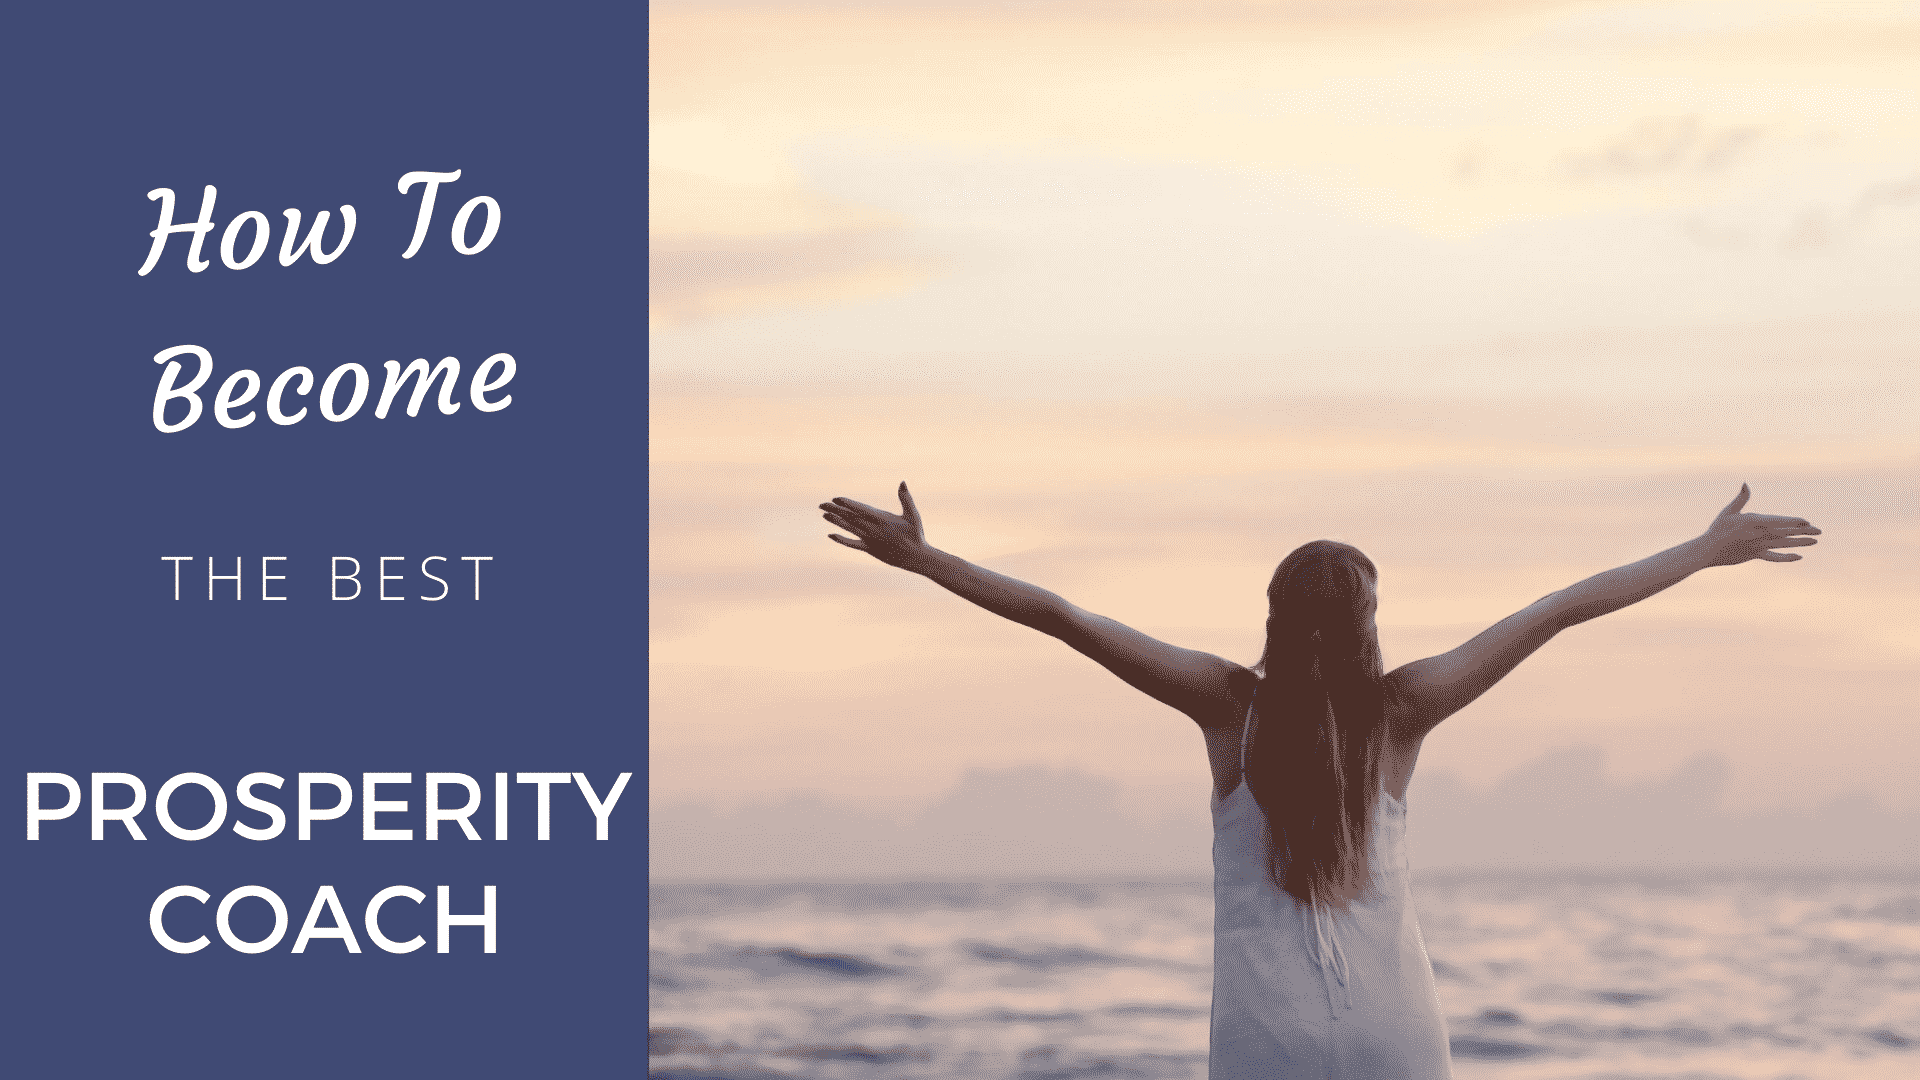 How to Become the Best Prosperity Coach in 2021? Prosperity Coach